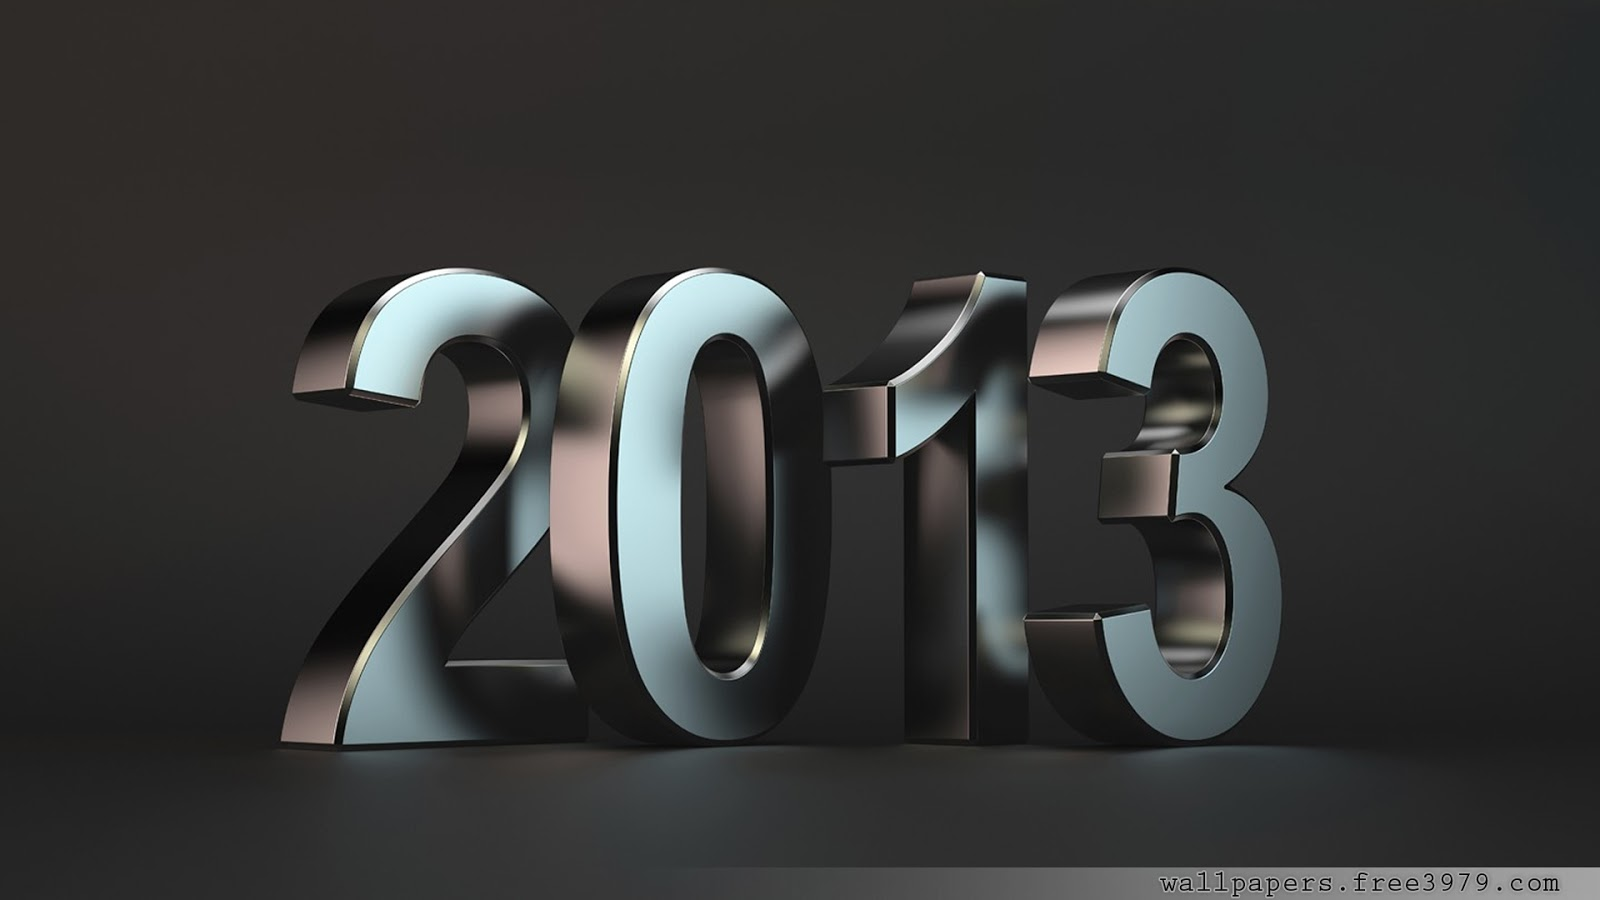 2013. New Year 2013